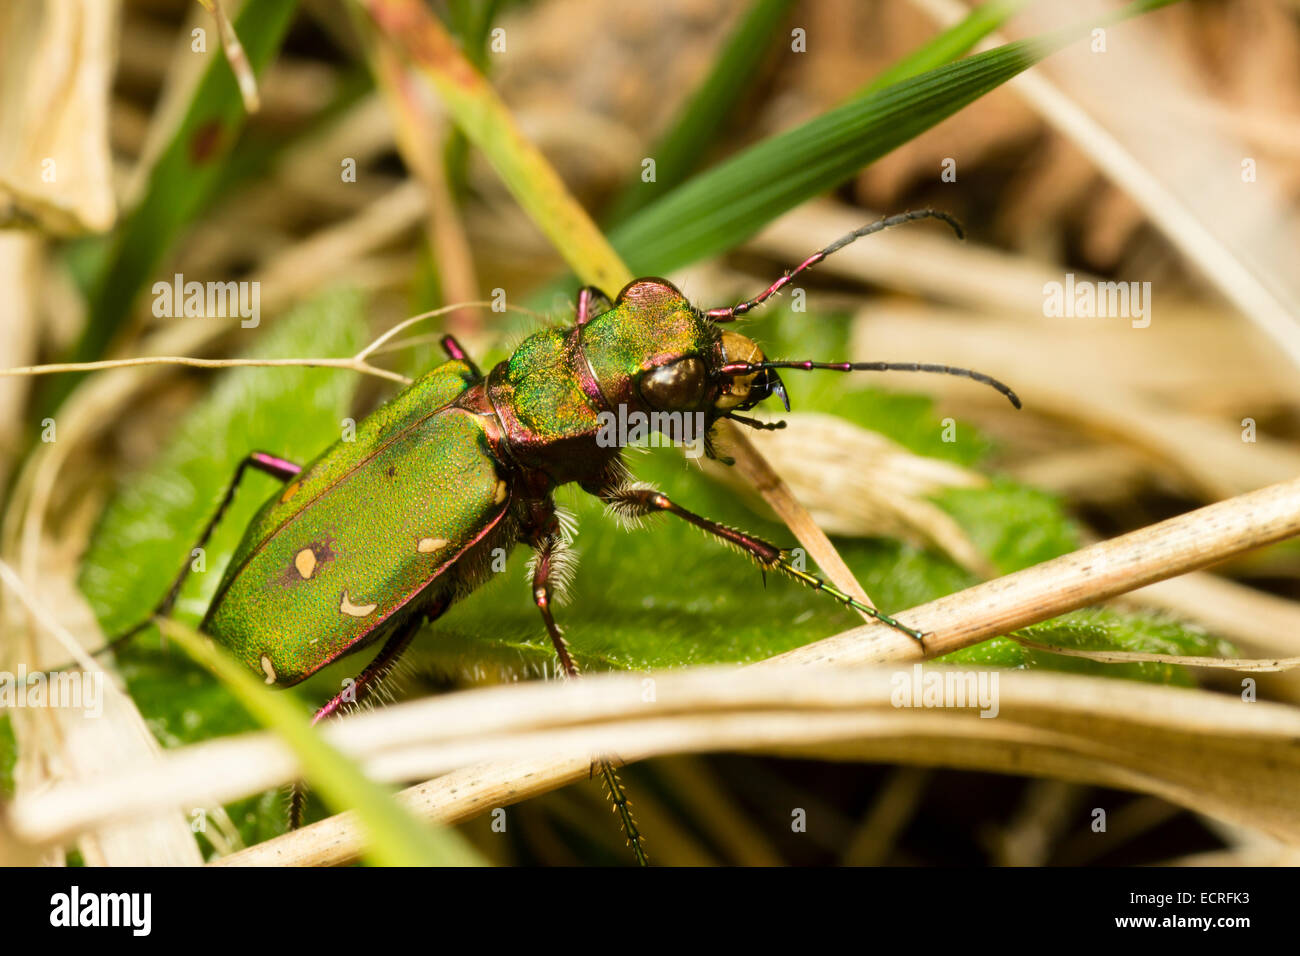 ground-living-green-tiger-beetle-cicindela-campestris-on-heathland-ECRFK3.jpg